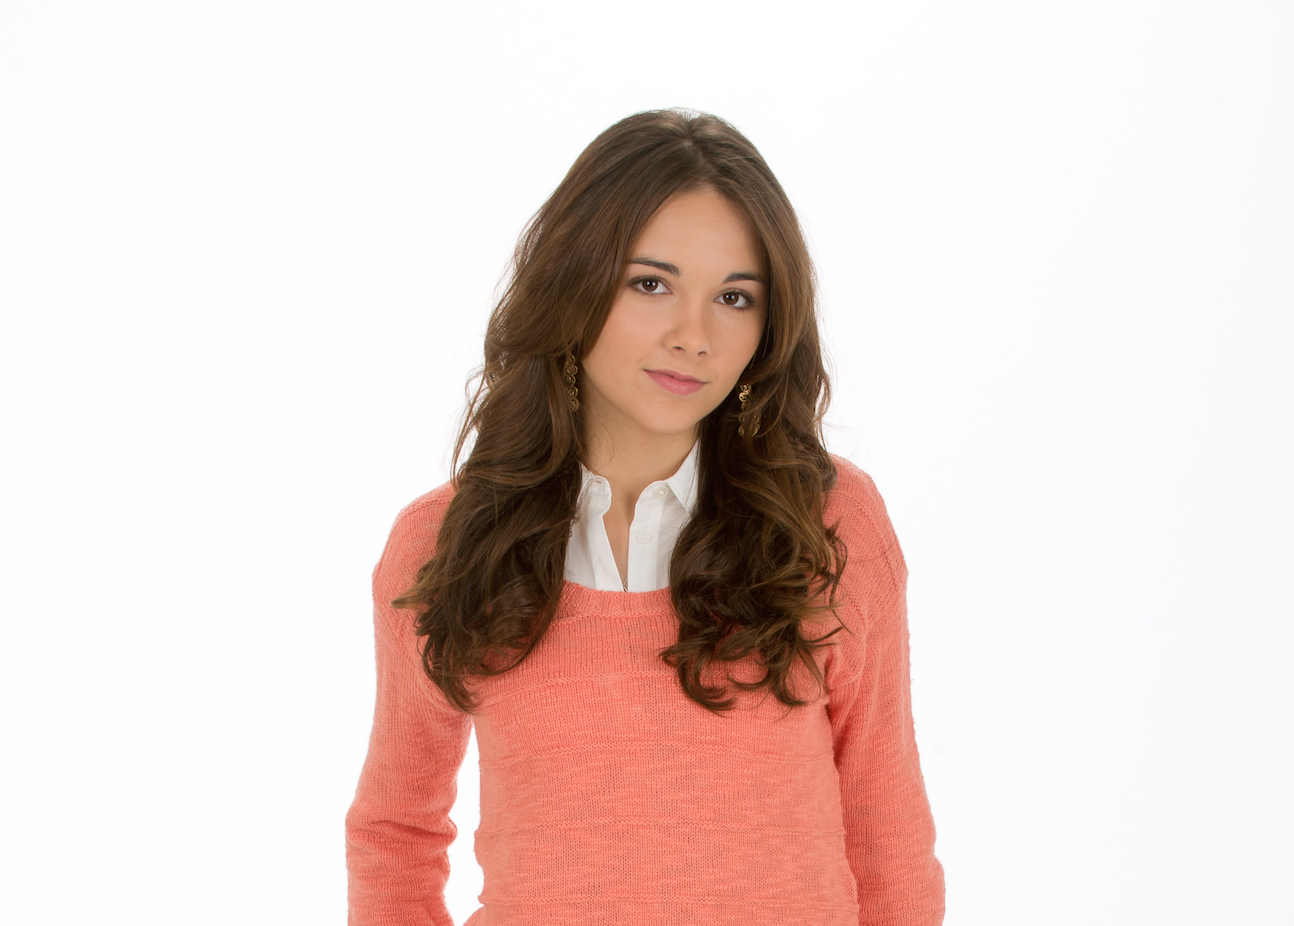 GH Haley Pullos - ABC